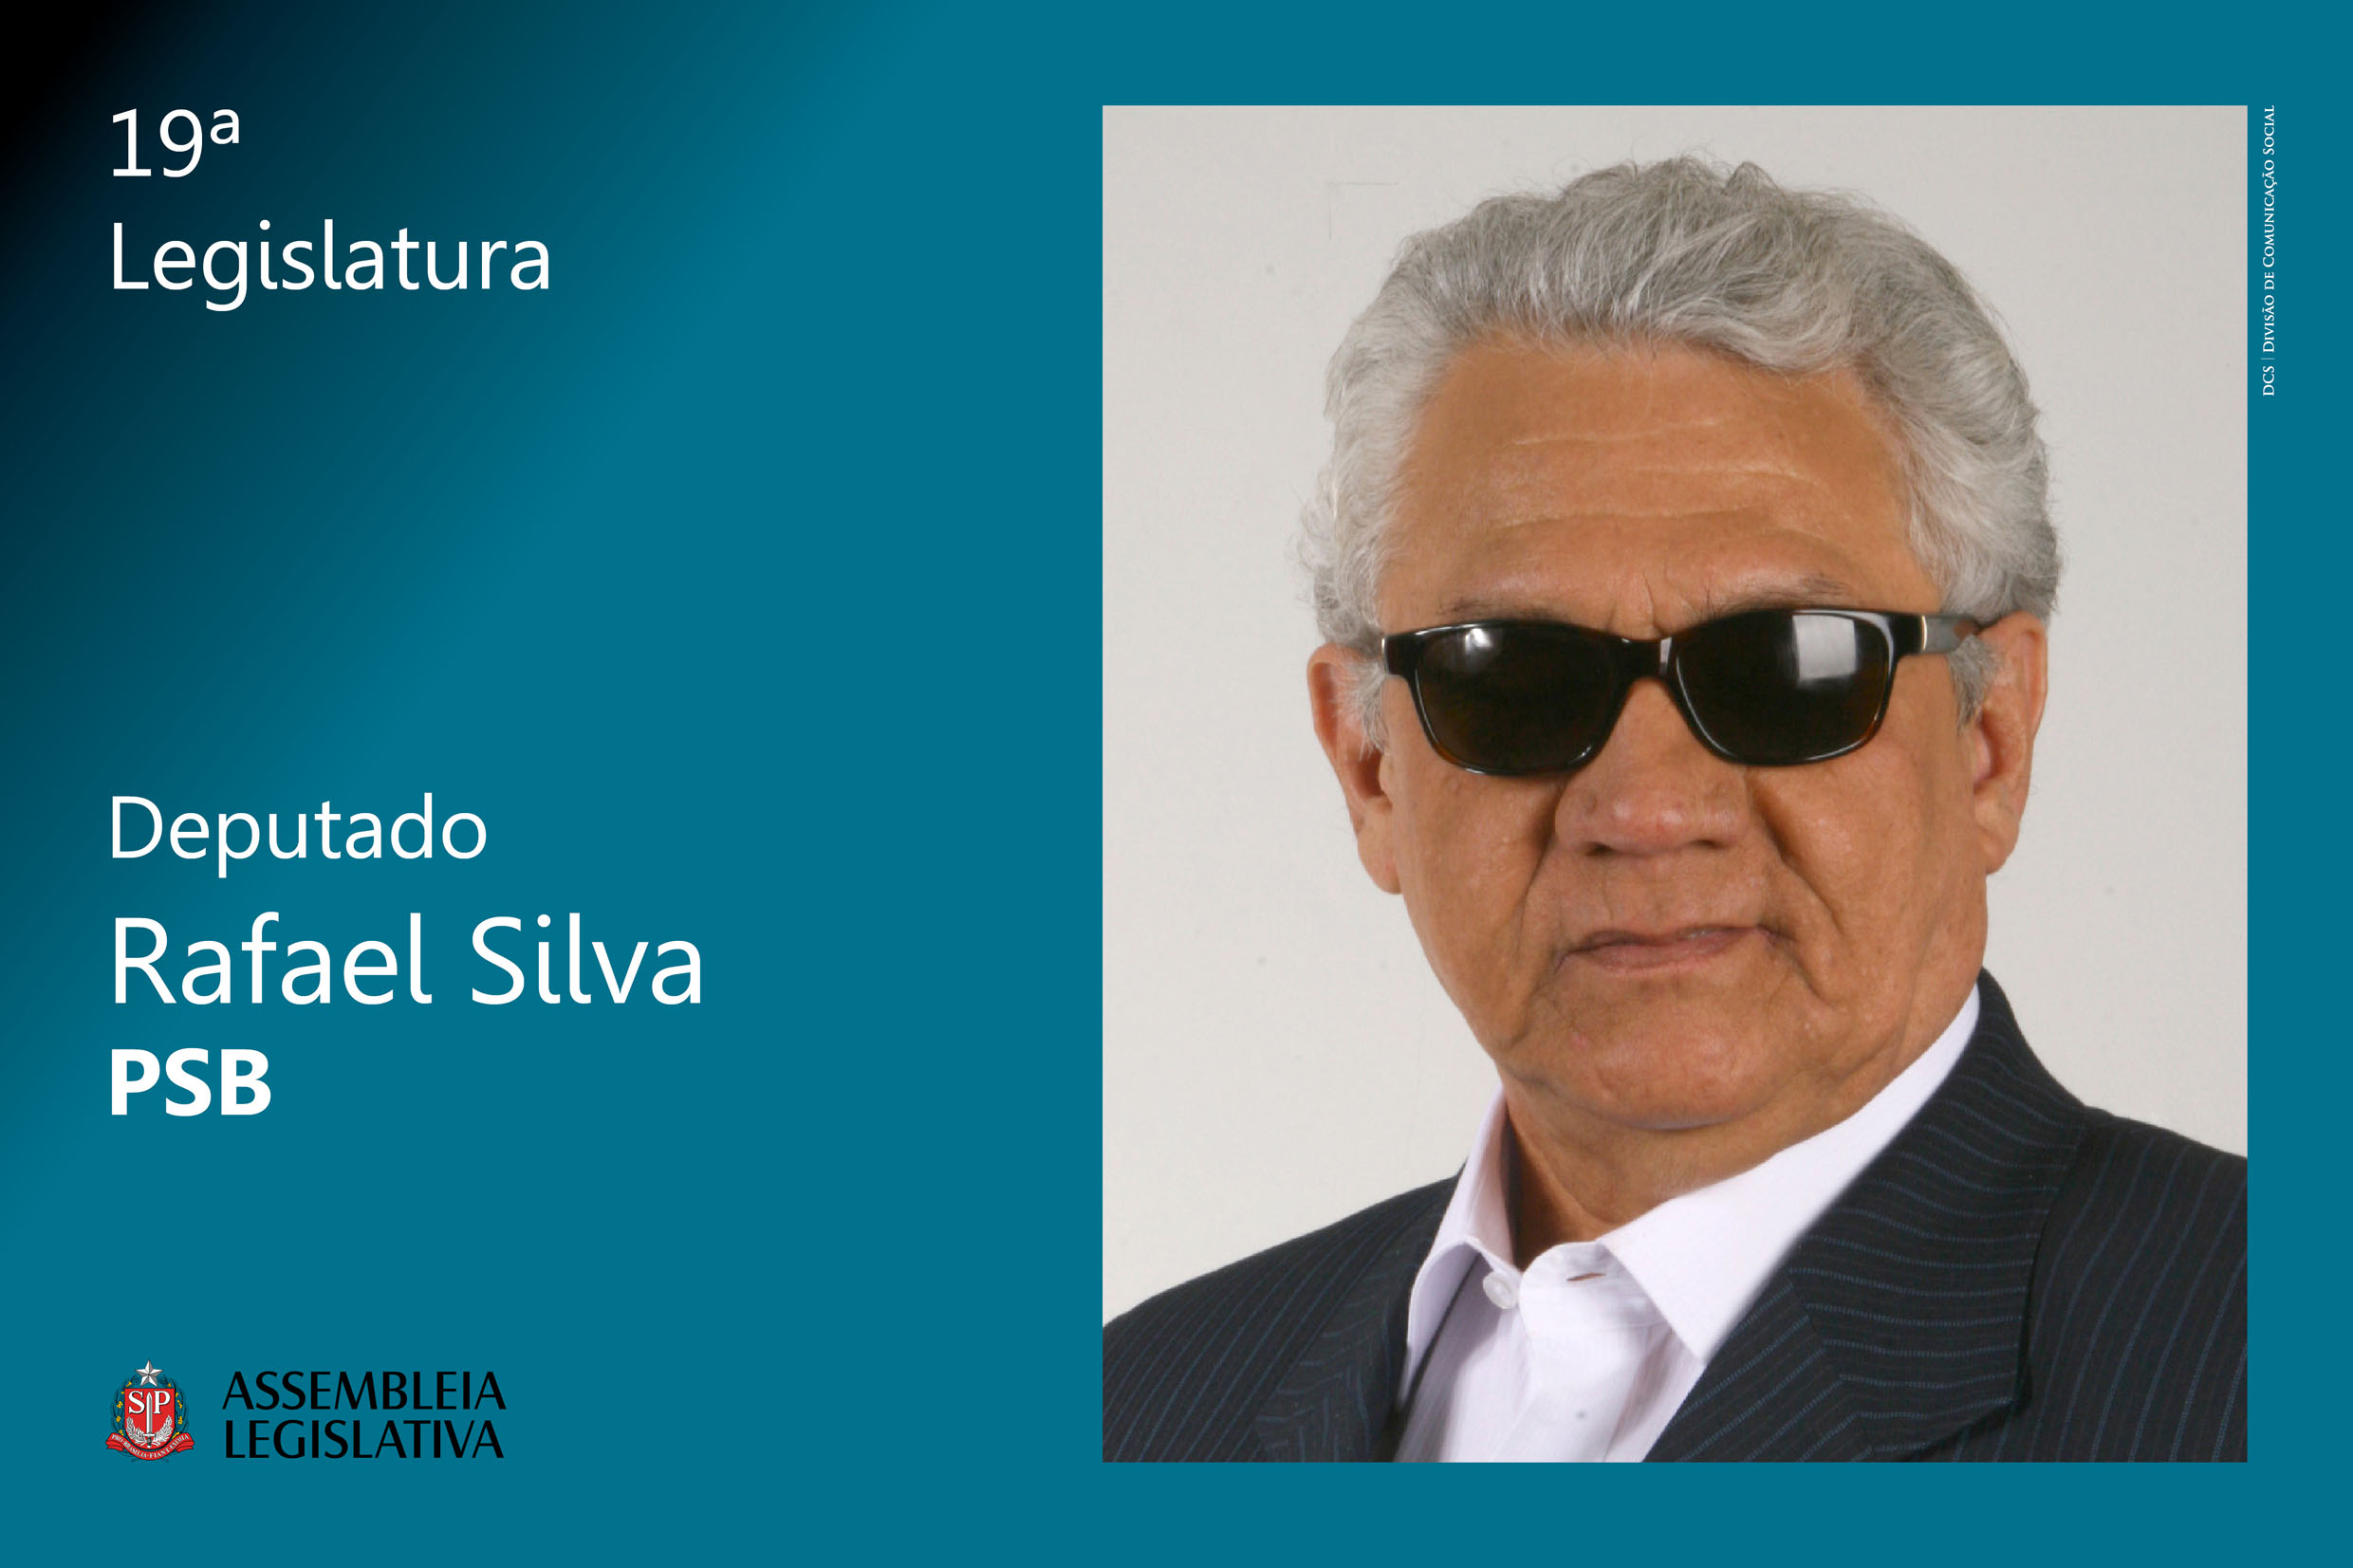 Rafael Silva (PSB)<a style='float:right' href='https://www3.al.sp.gov.br/repositorio/noticia/N-03-2019/fg231272.jpg' target=_blank><img src='/_img/material-file-download-white.png' width='14px' alt='Clique para baixar a imagem'></a>